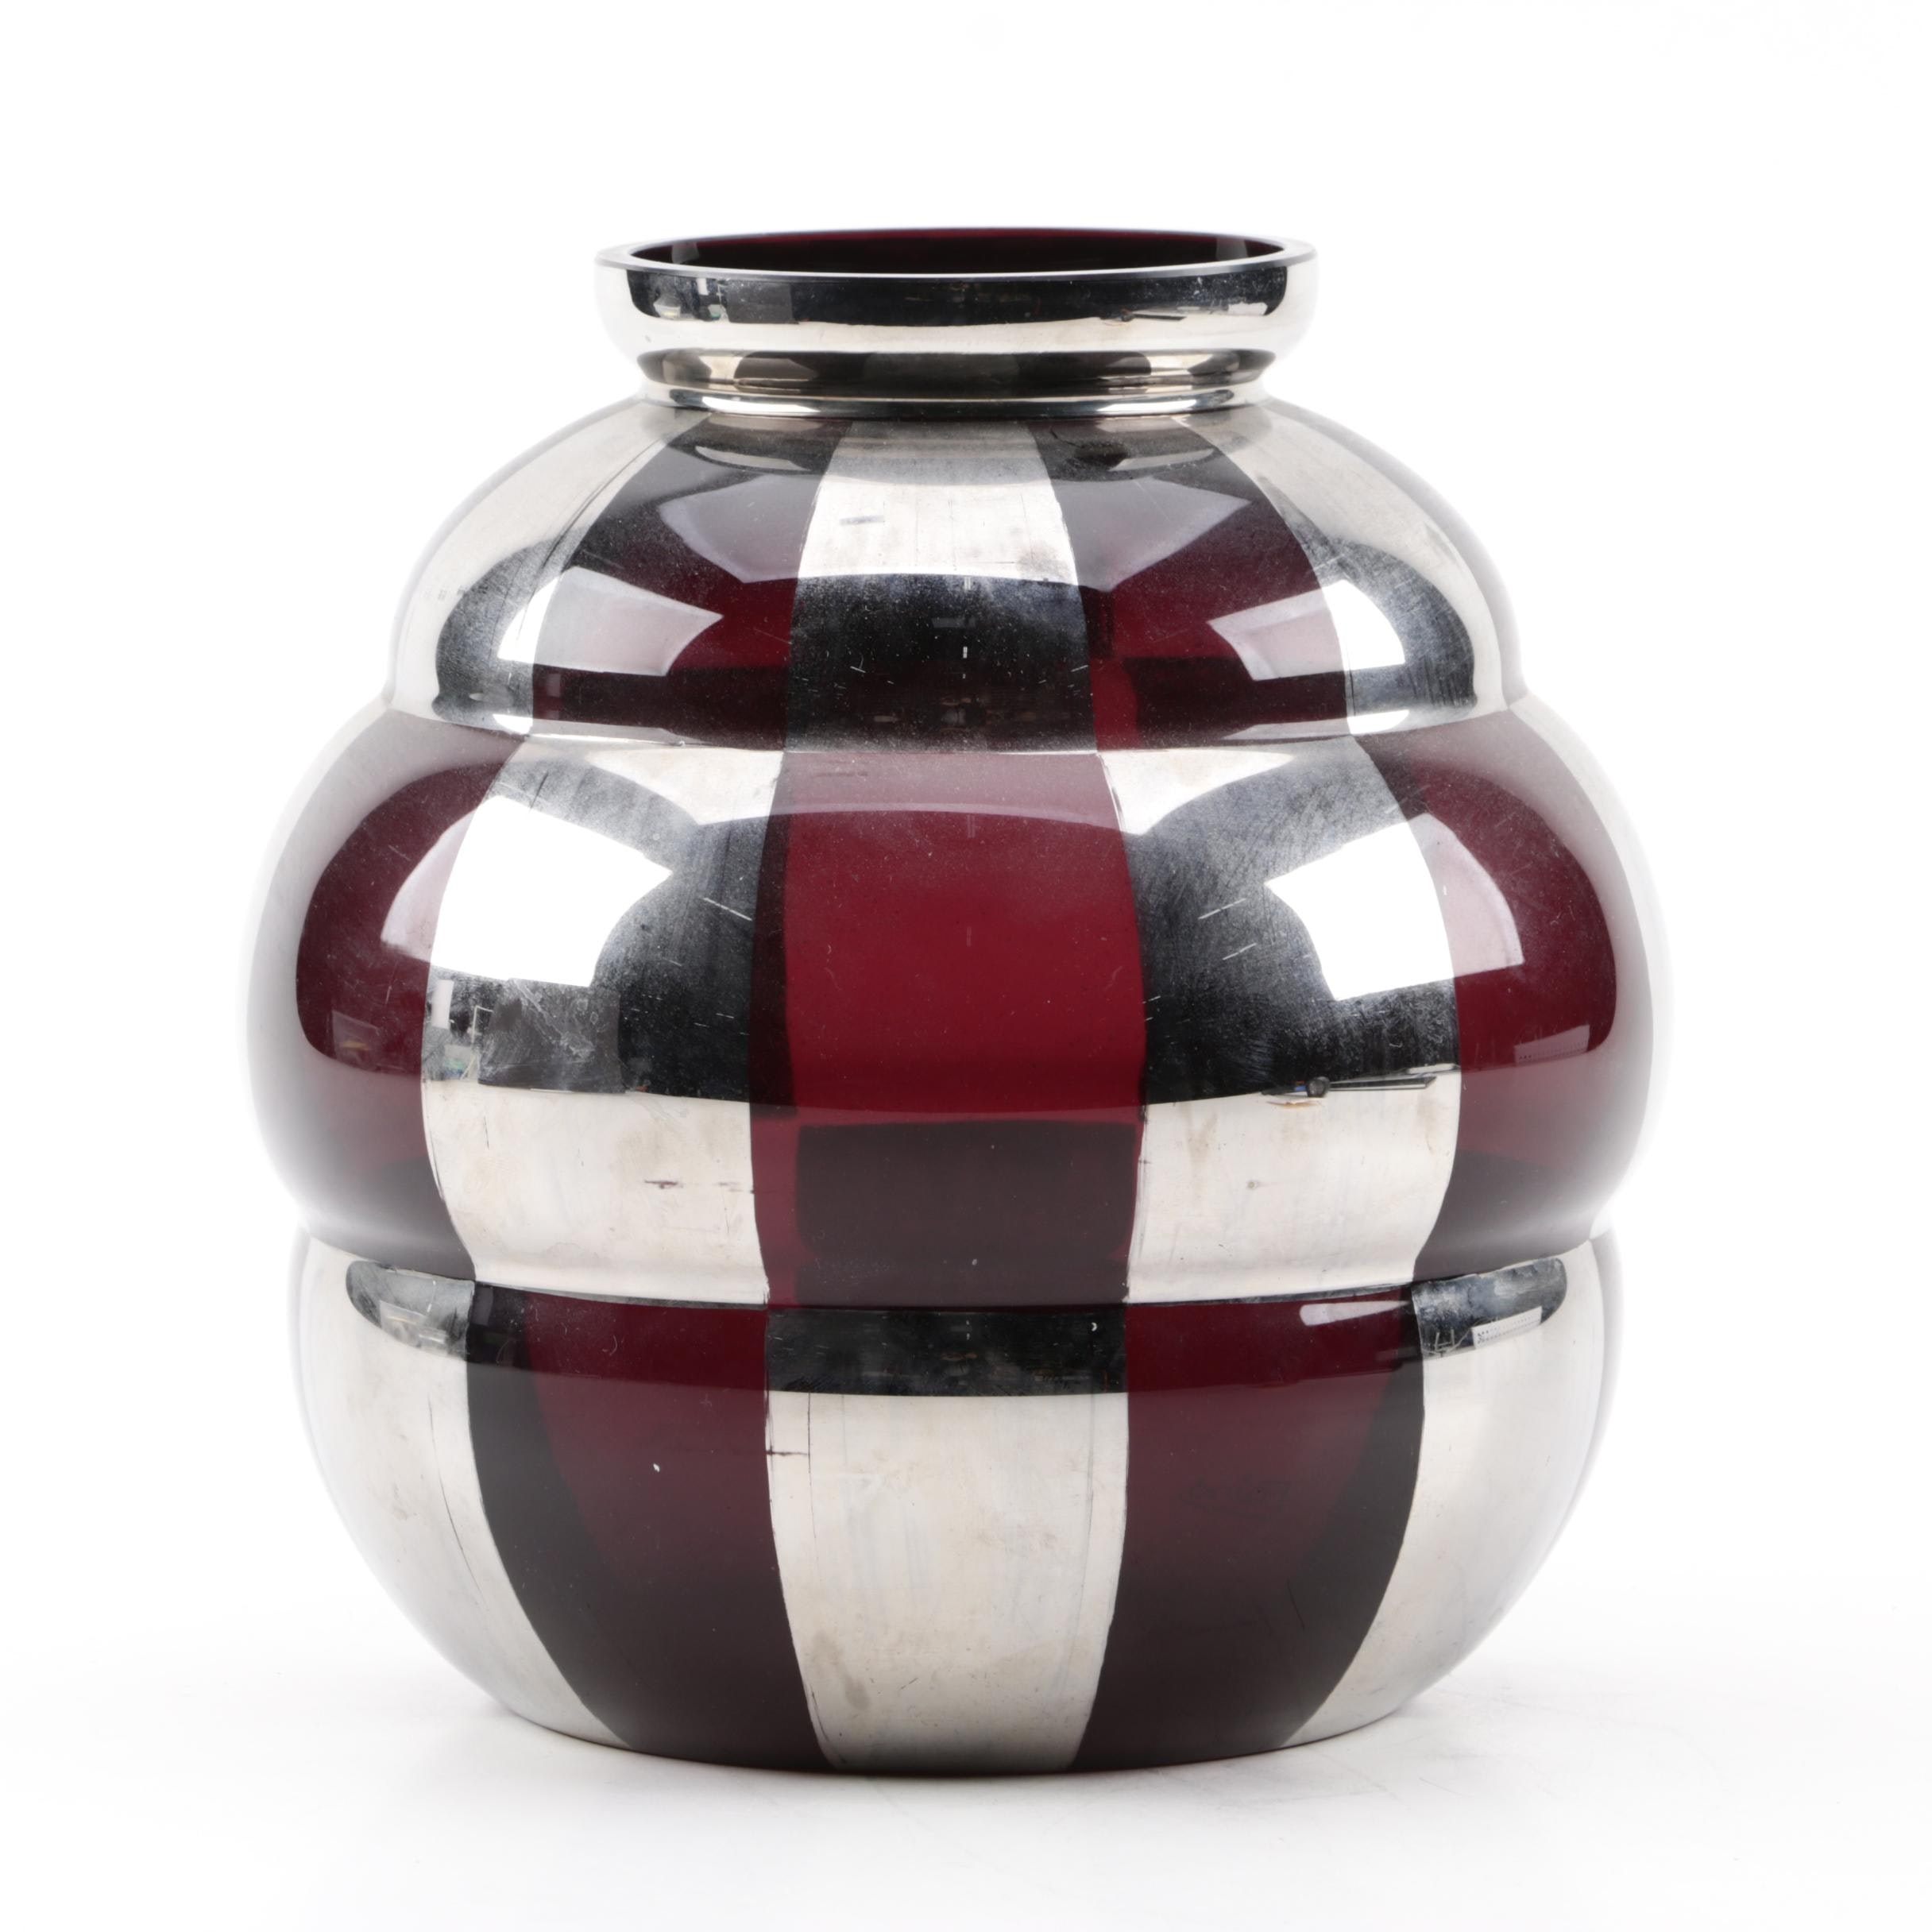 French Art Deco Silver and Amethyst Glass Vase, 1930s